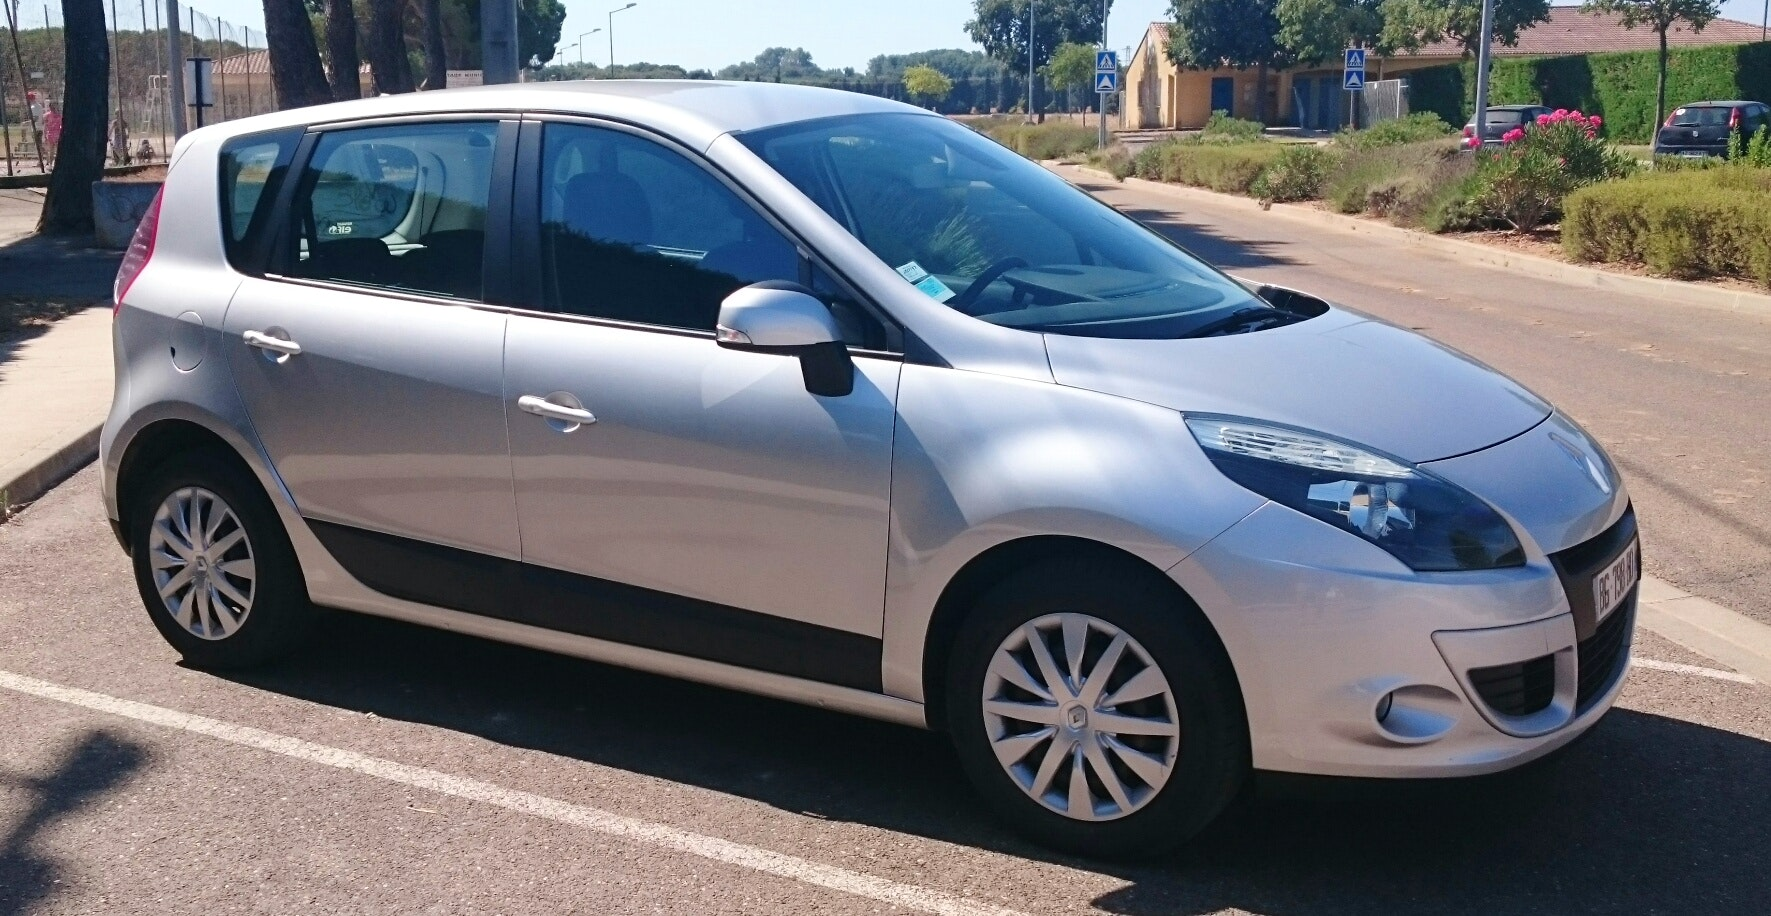 Renault  Scenic III 1.5 dci 110 cv expression, 2011, Diesel - Familiale Nîmes (30)